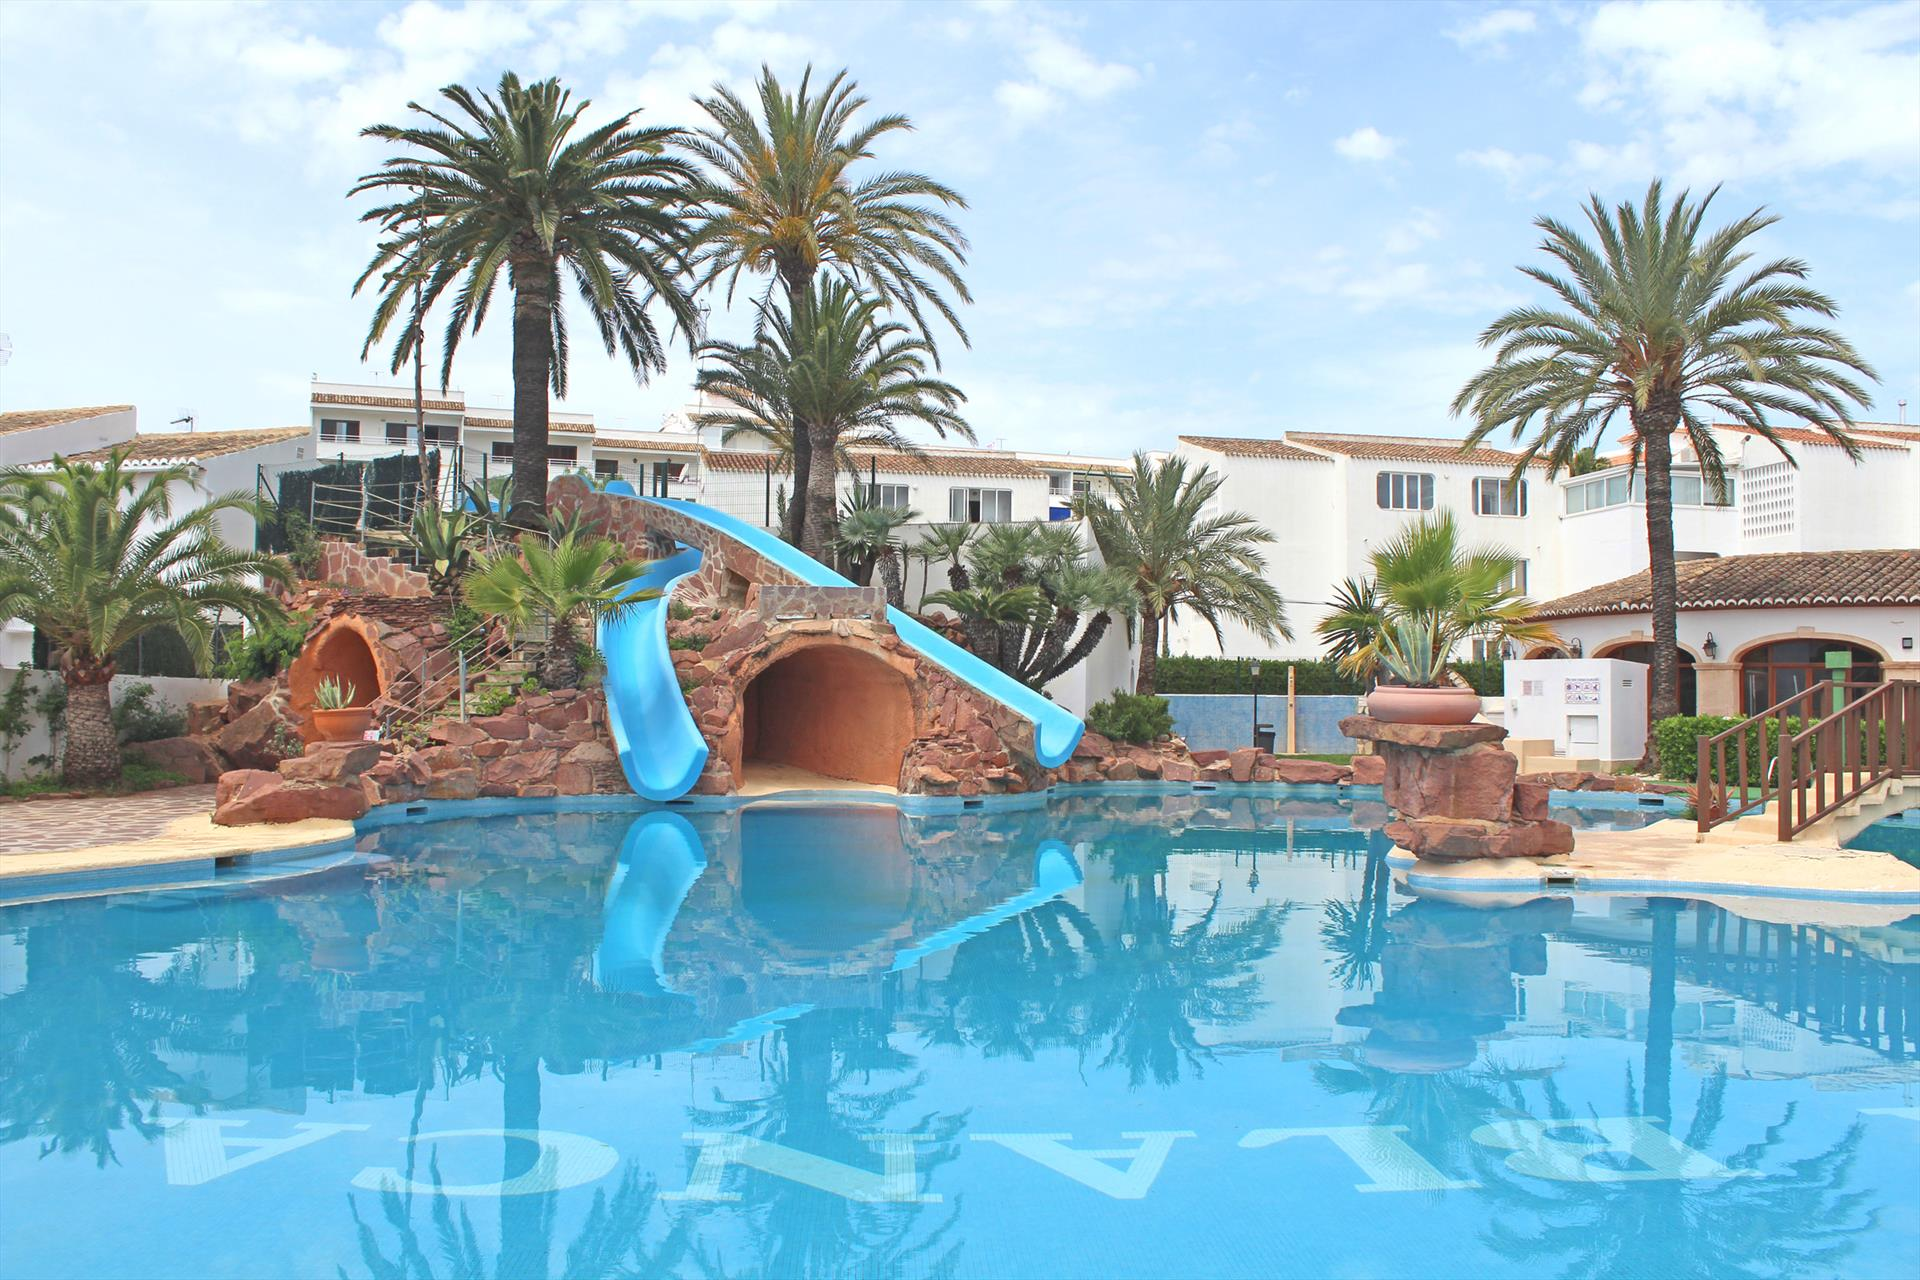 Cala Blanca,Lovely town house in Javea for 6 persons, located in the urbanisation Cala Blanca with an amazing communal pool with slides,.....